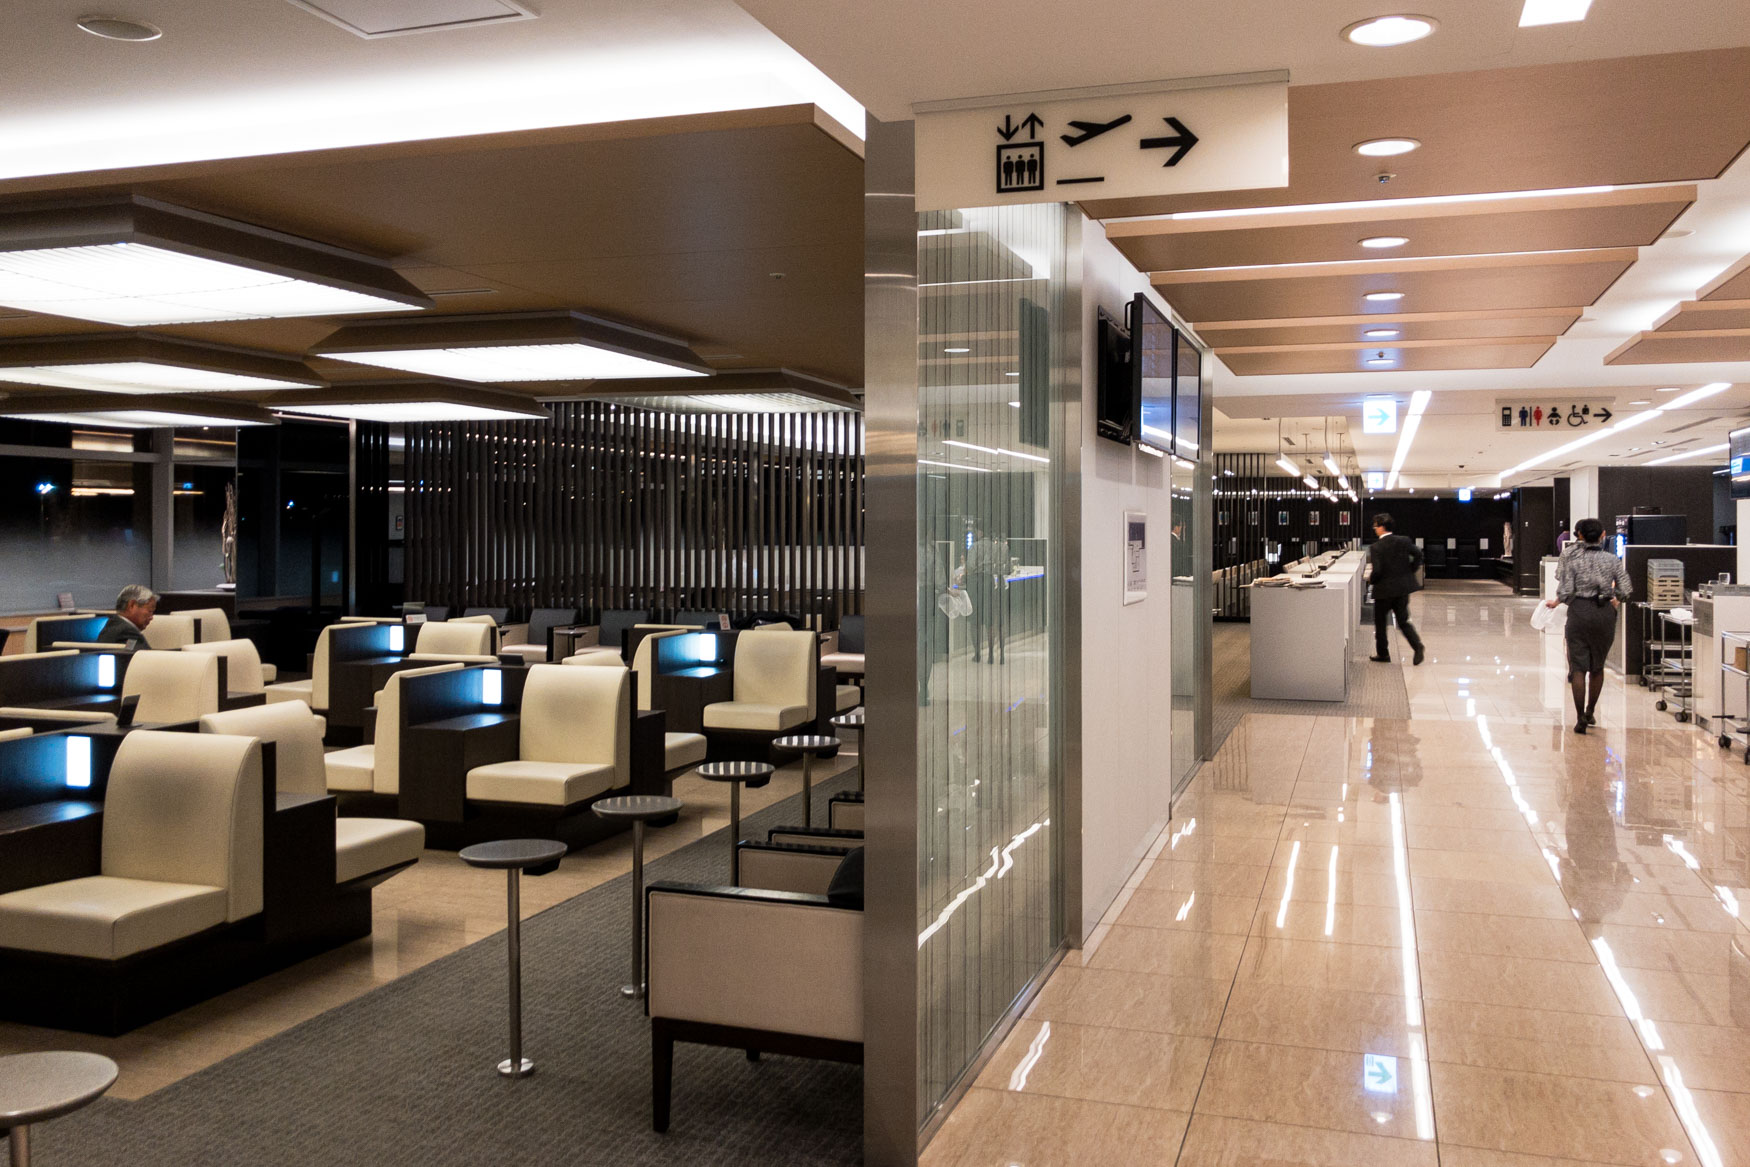 Overview of domestic ANA business class lounge at Tokyo Haneda